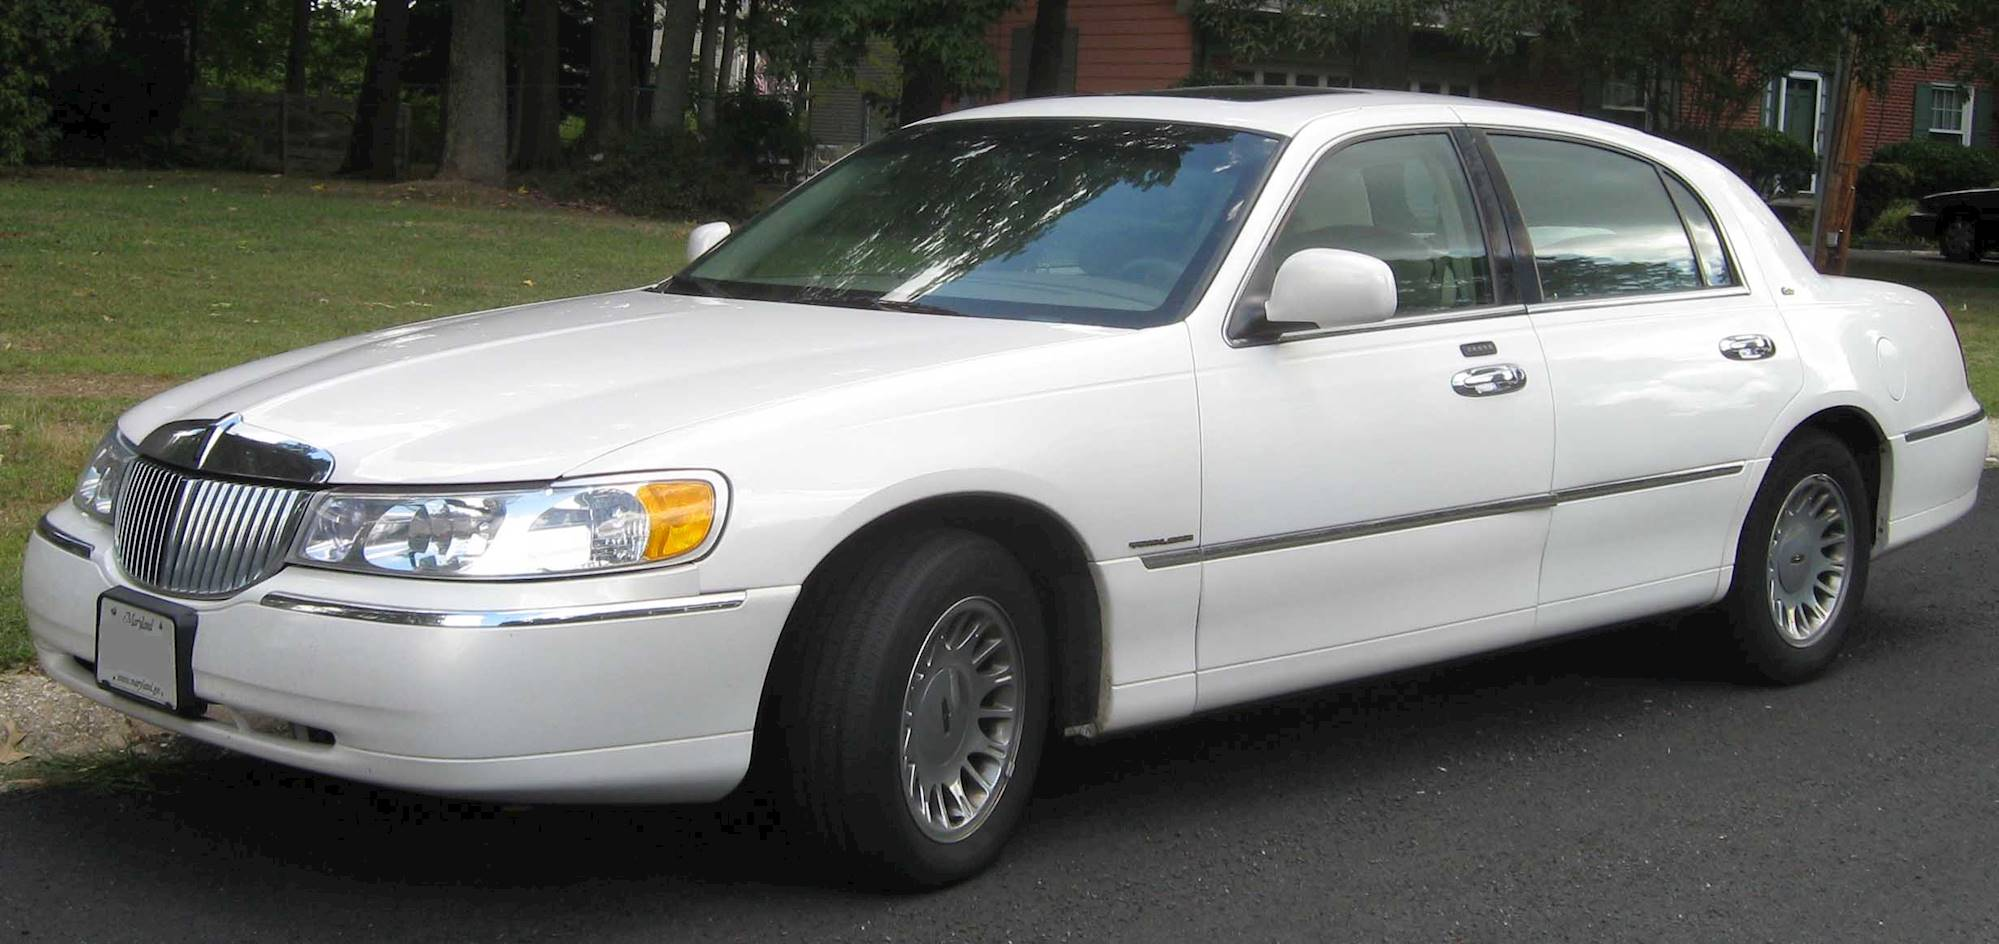 2000 Lincoln Town Car Executive Sedan 4 6l V8 Auto